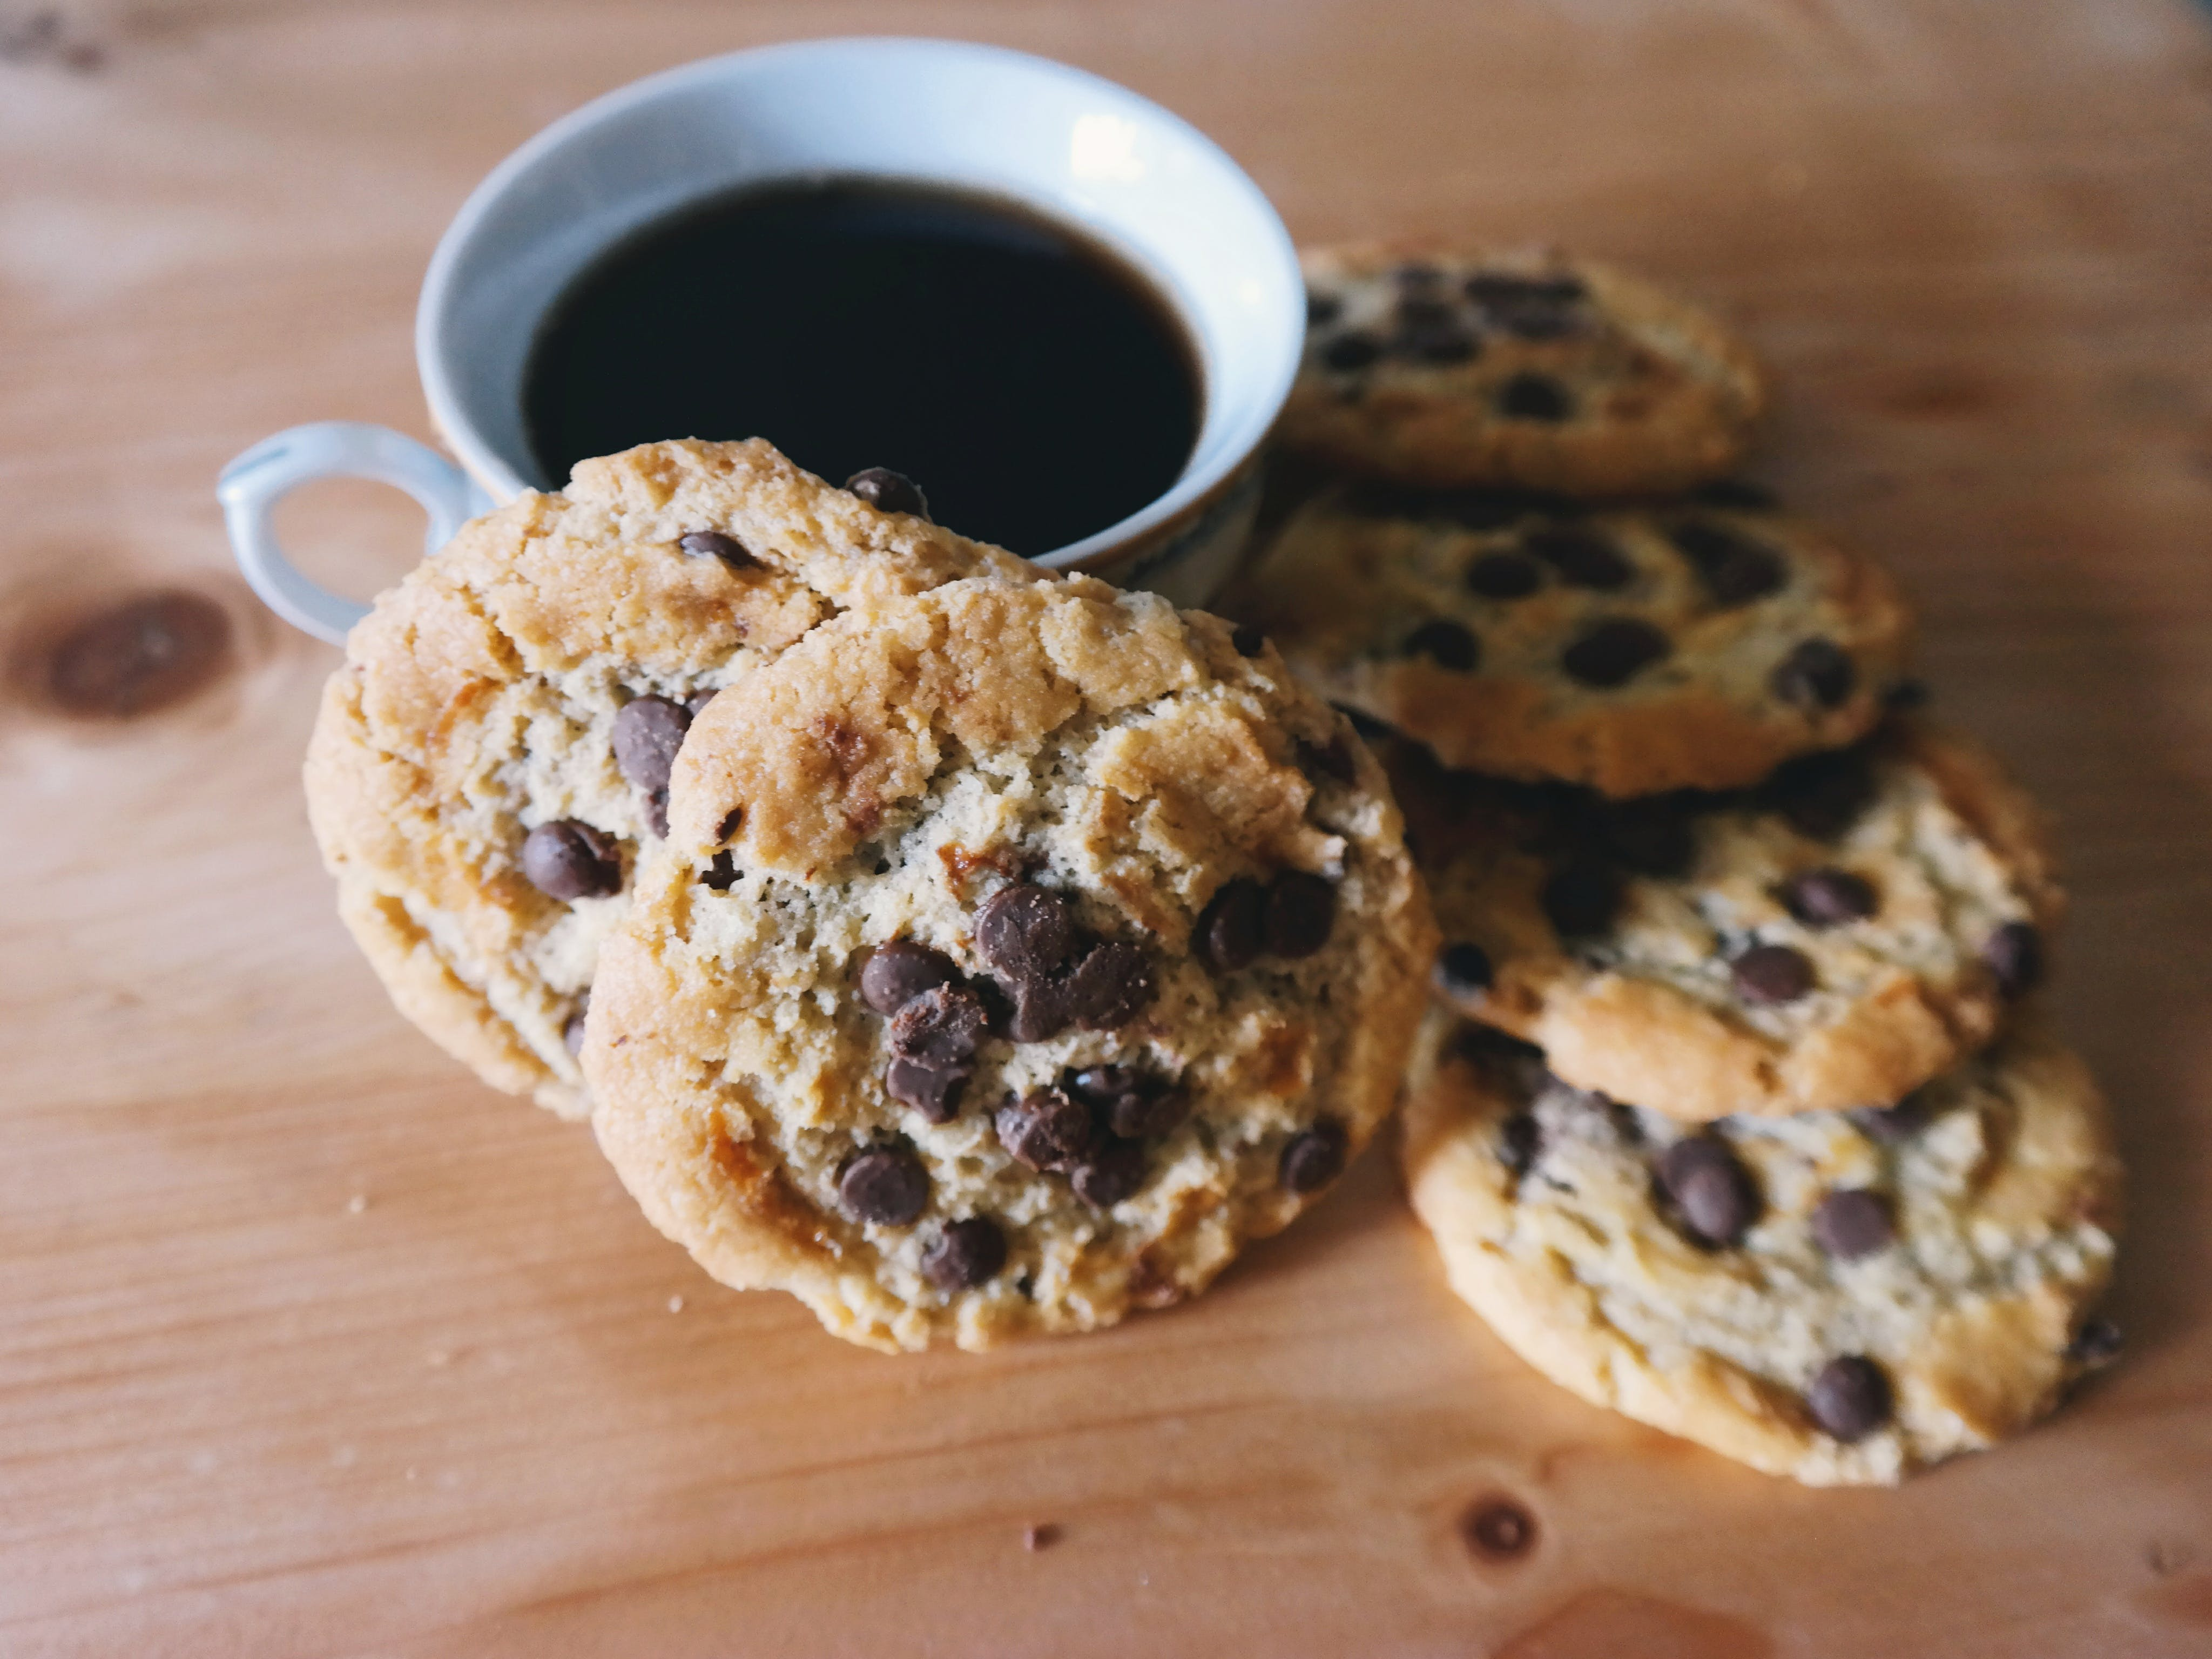 Cup of Coffee and Cookies on Table